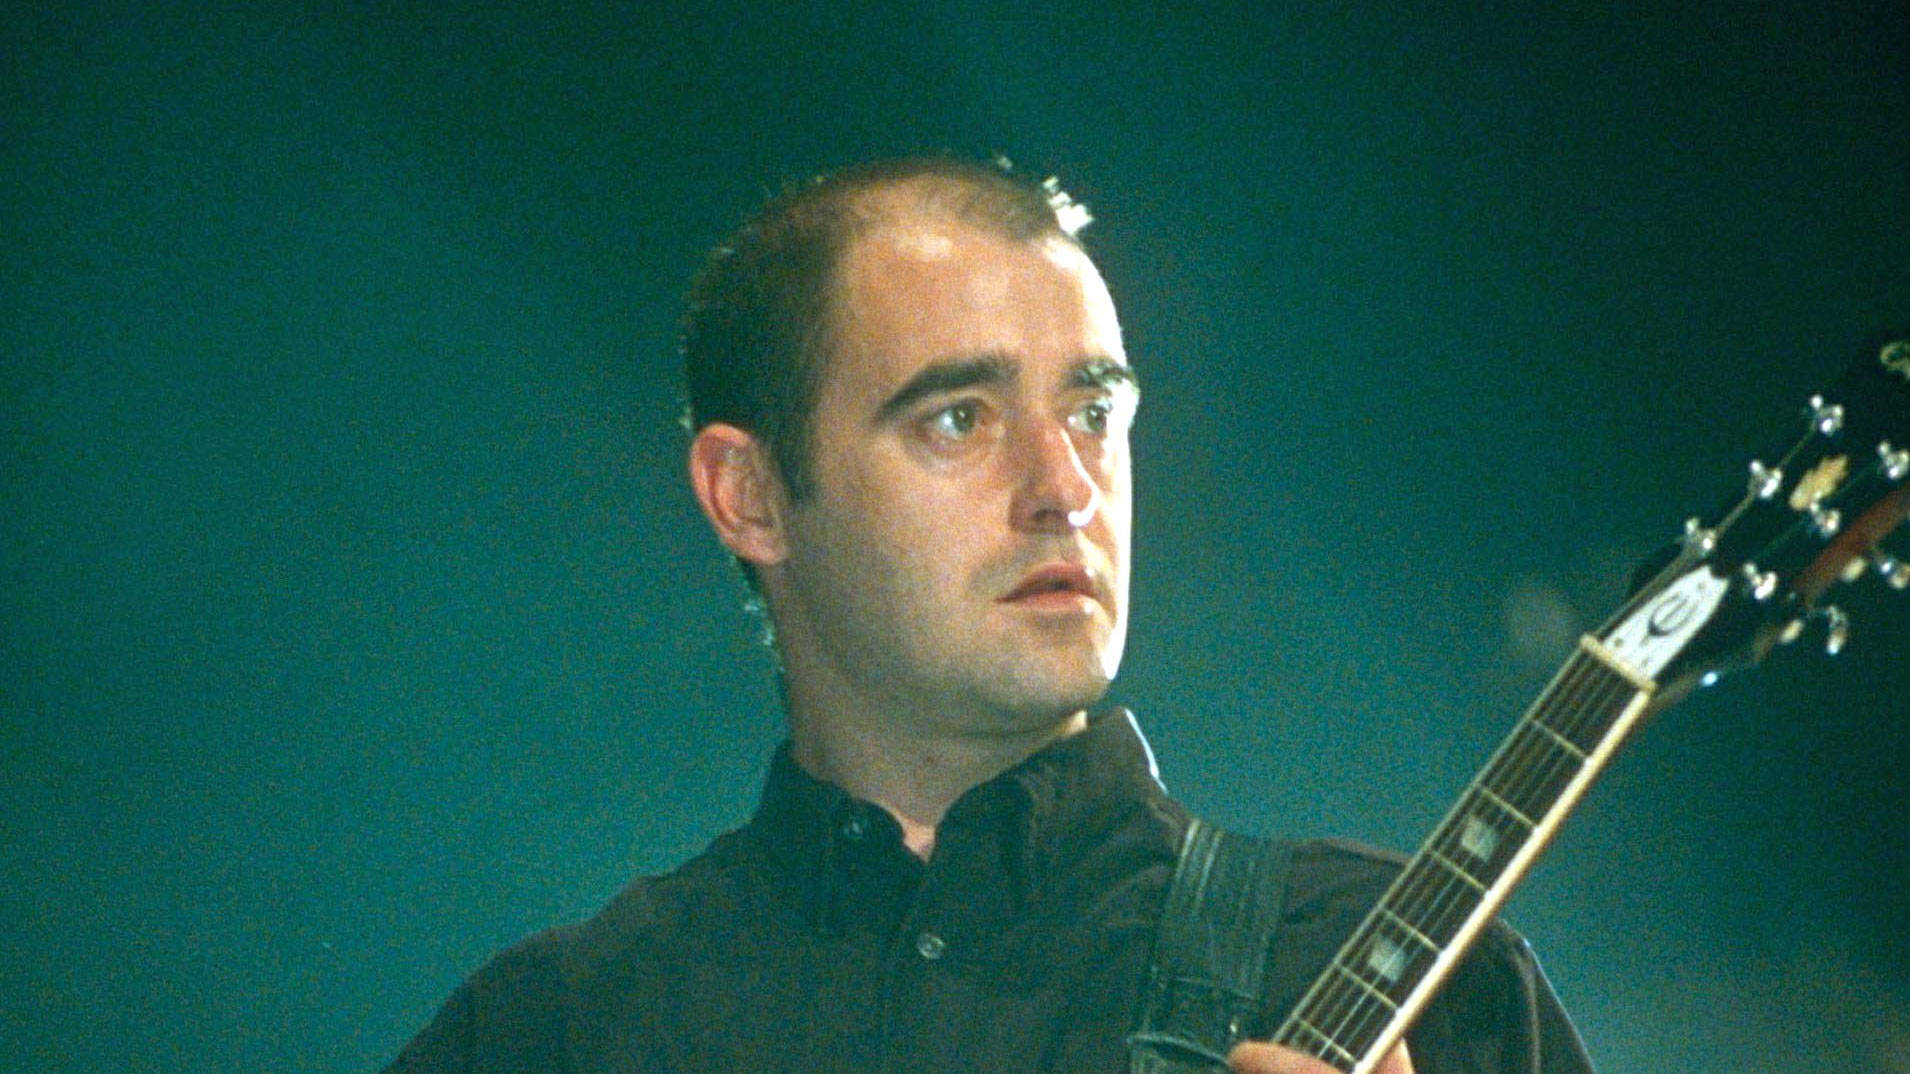 PHOTOS: Bonehead shares unseen Oasis pictures after 25 years - Radio X